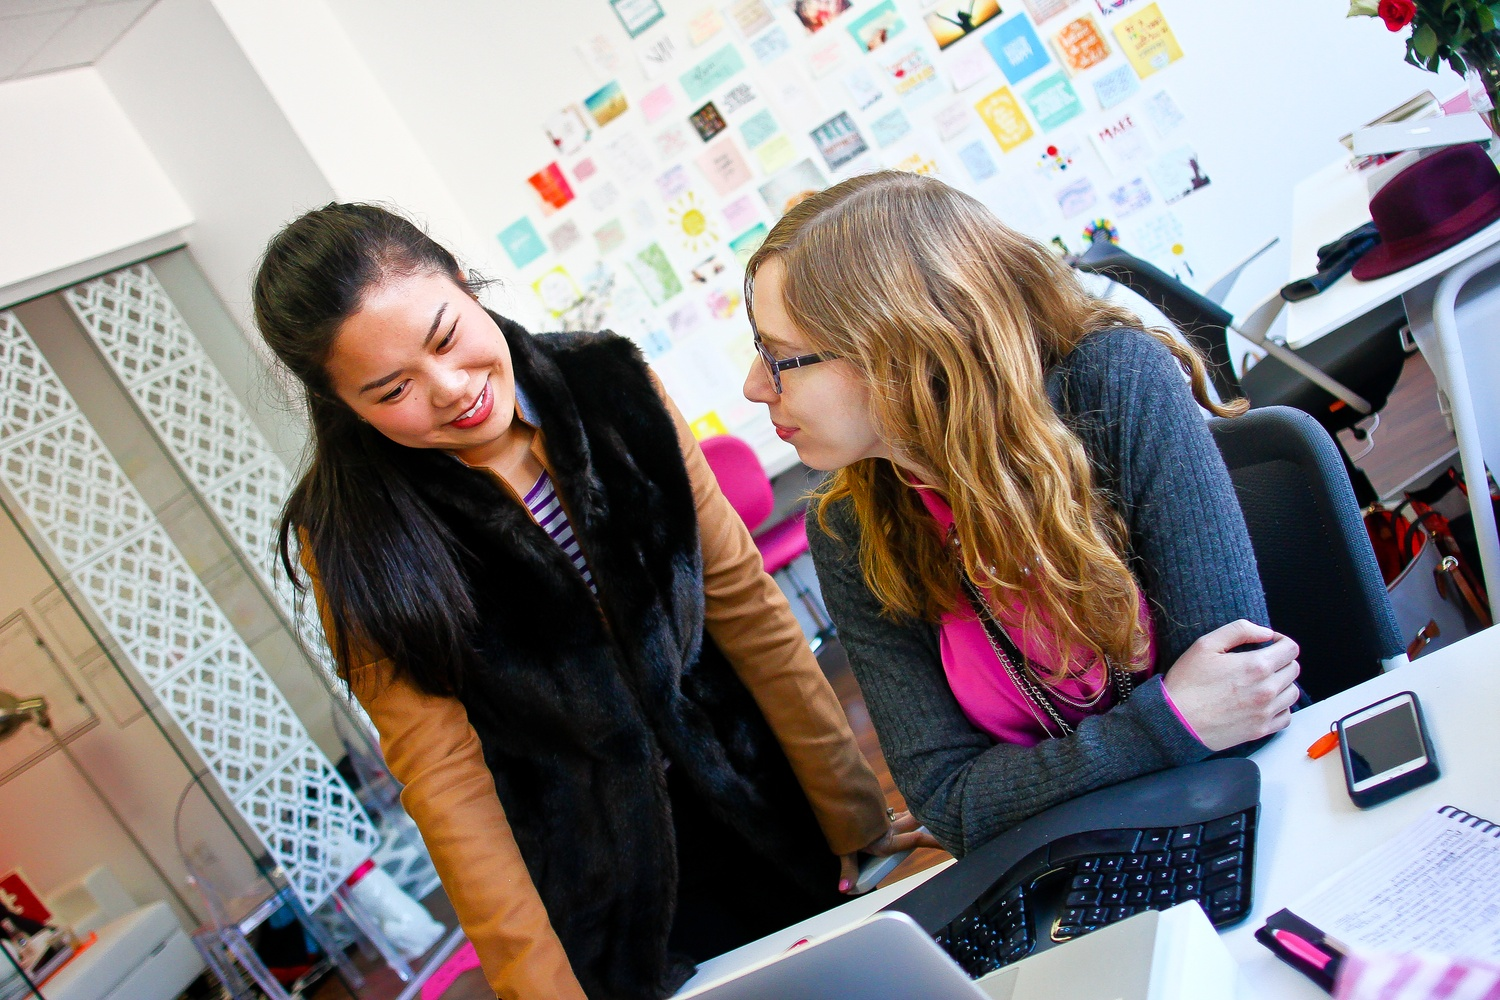 Annie Wang, co-founder of the online magazine Her Campus, touches base with the magazine's Product Manager Quinn Cohane.